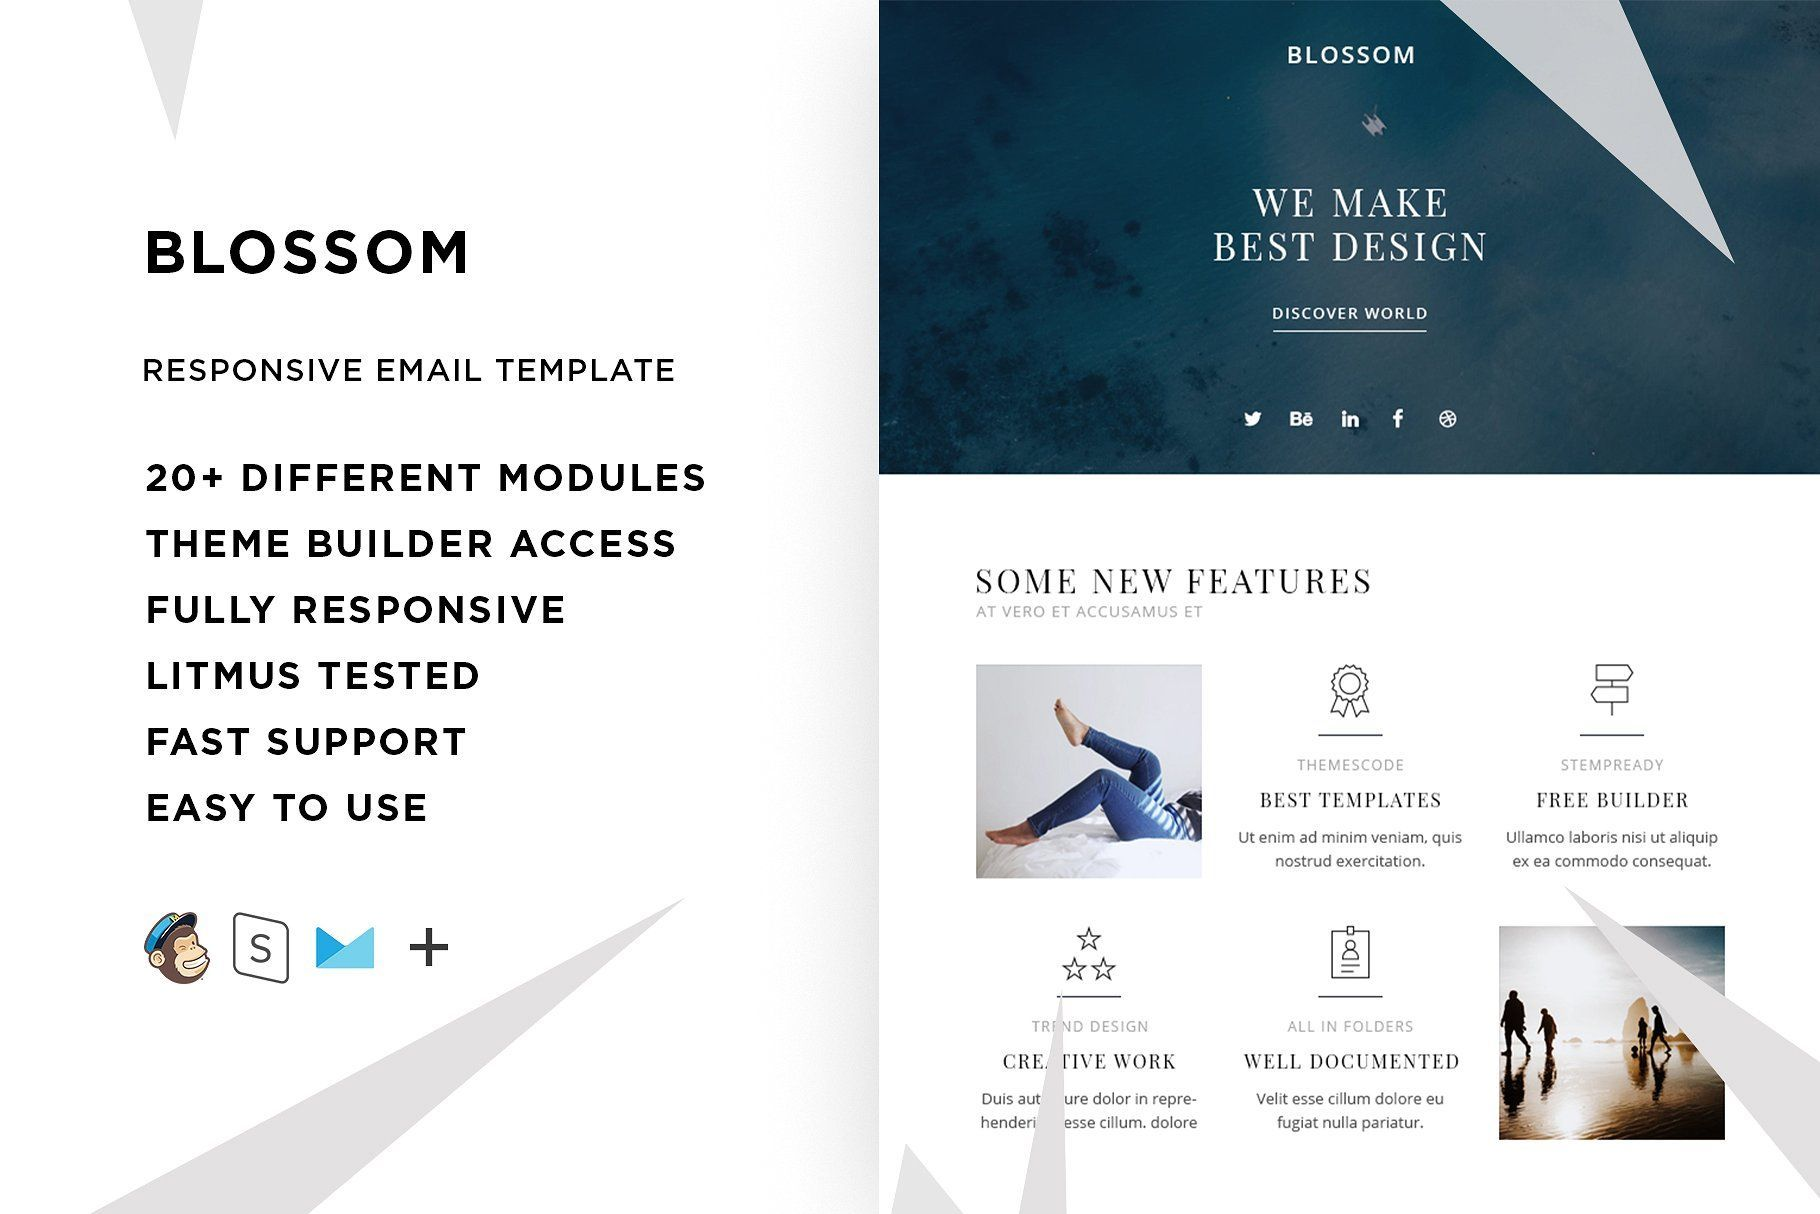 Blossom Responsive Email Template Responsive Email Template